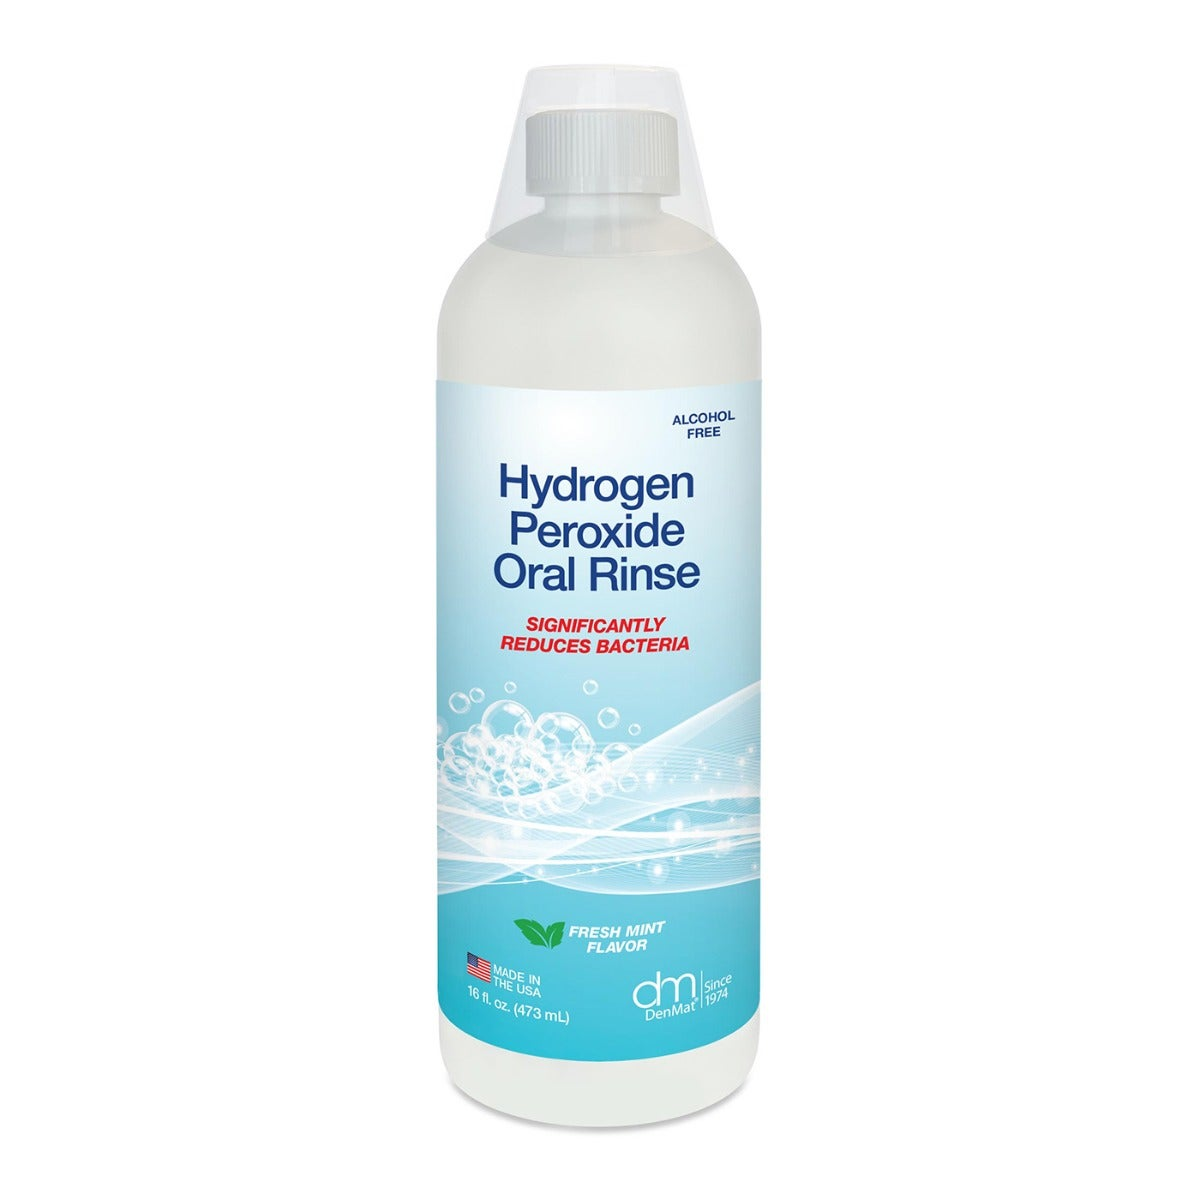 Hydrogen Peroxide Oral Rinse 6-Pack (16oz)